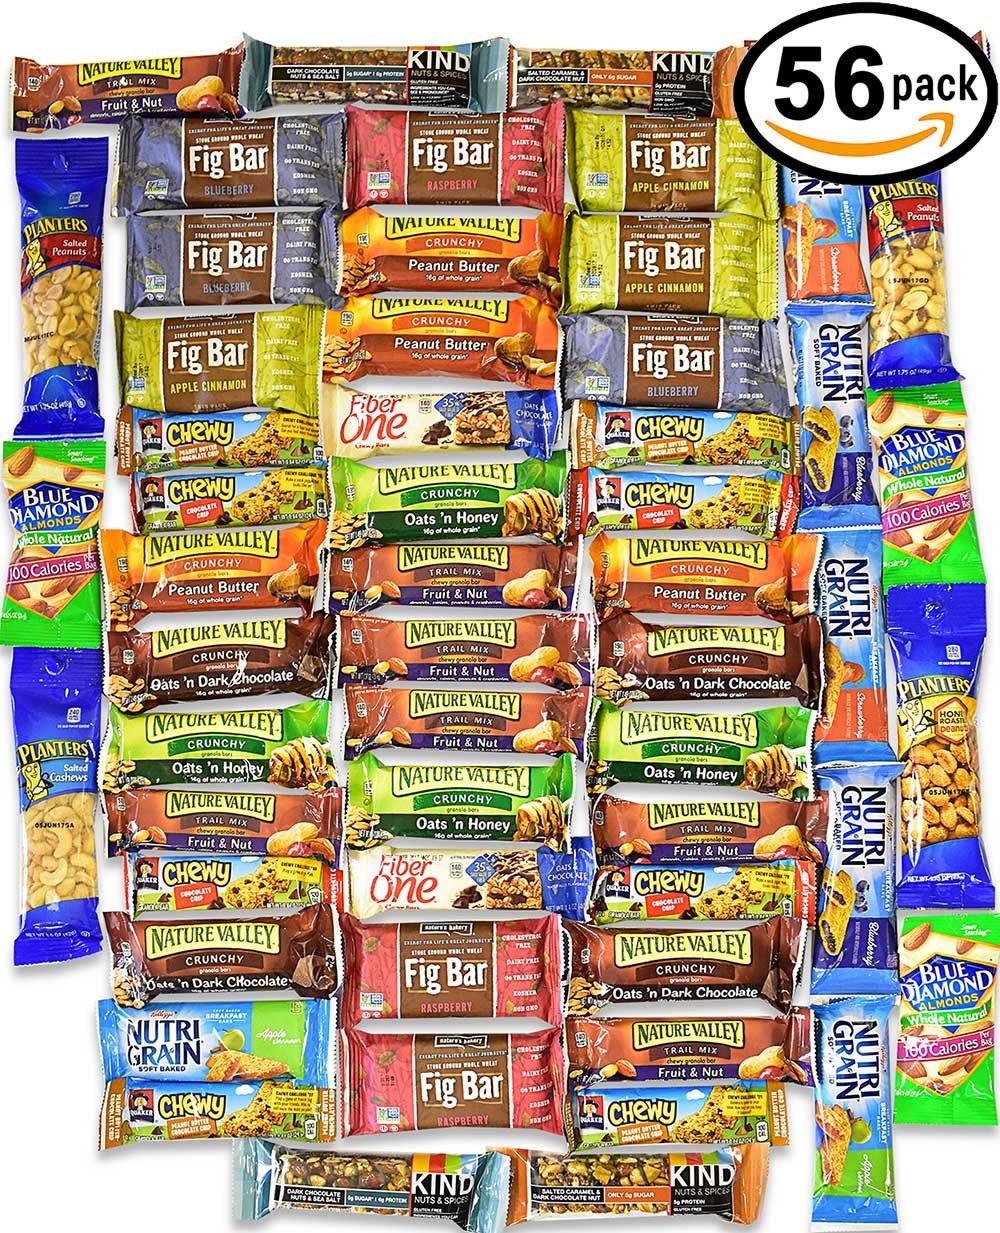 Healthy Snacks and Bars Variety Pack Gift Snack Box - Bulk Sampler (Care Package 56 Count) by Blue Ribbon